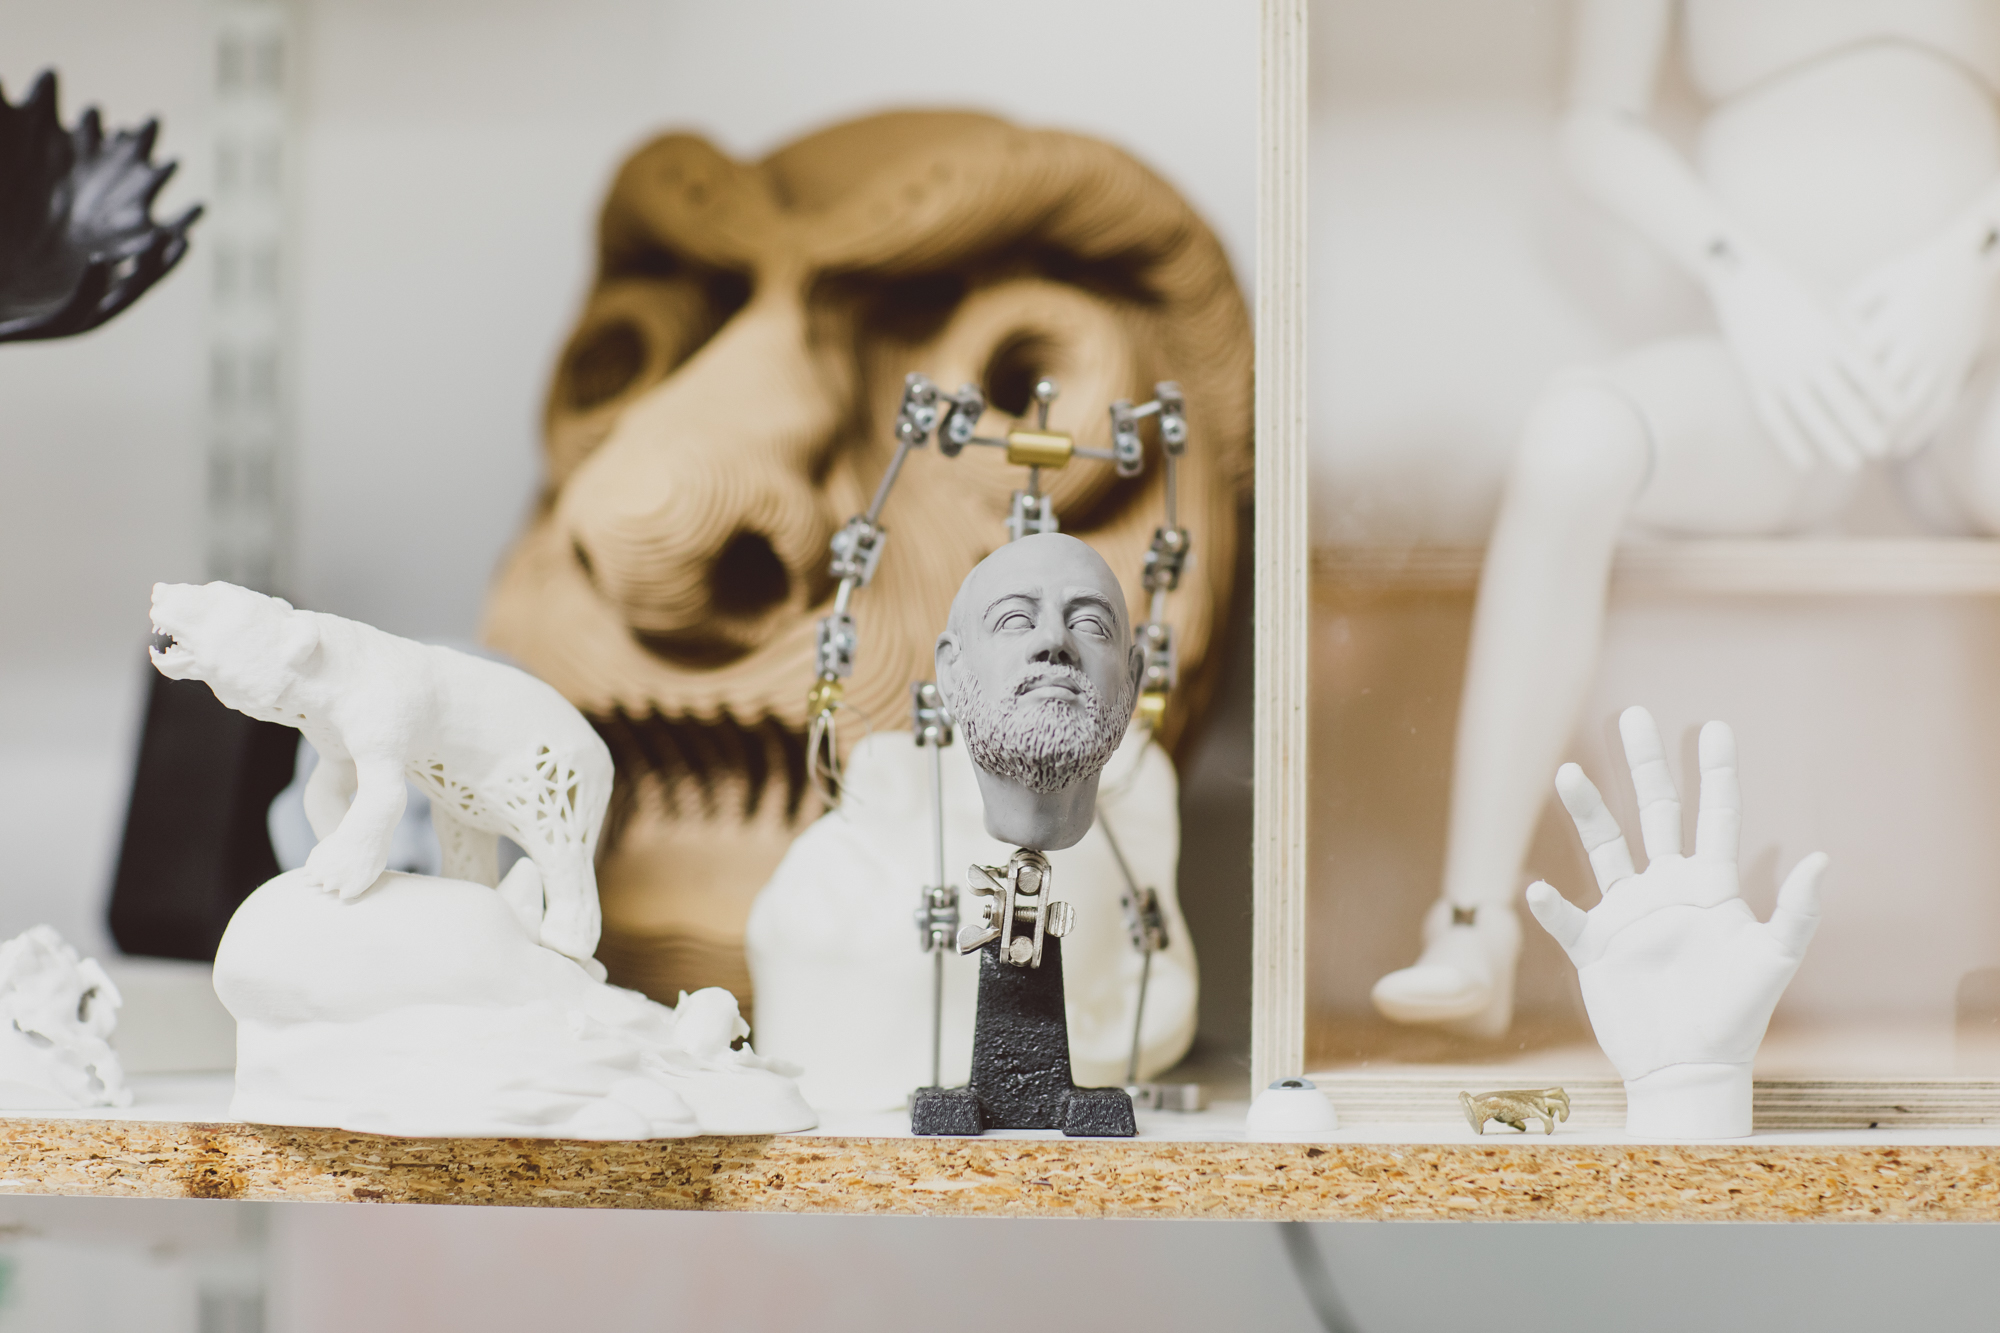 Models of a polar bear, mask, man and hand in 3D workshop